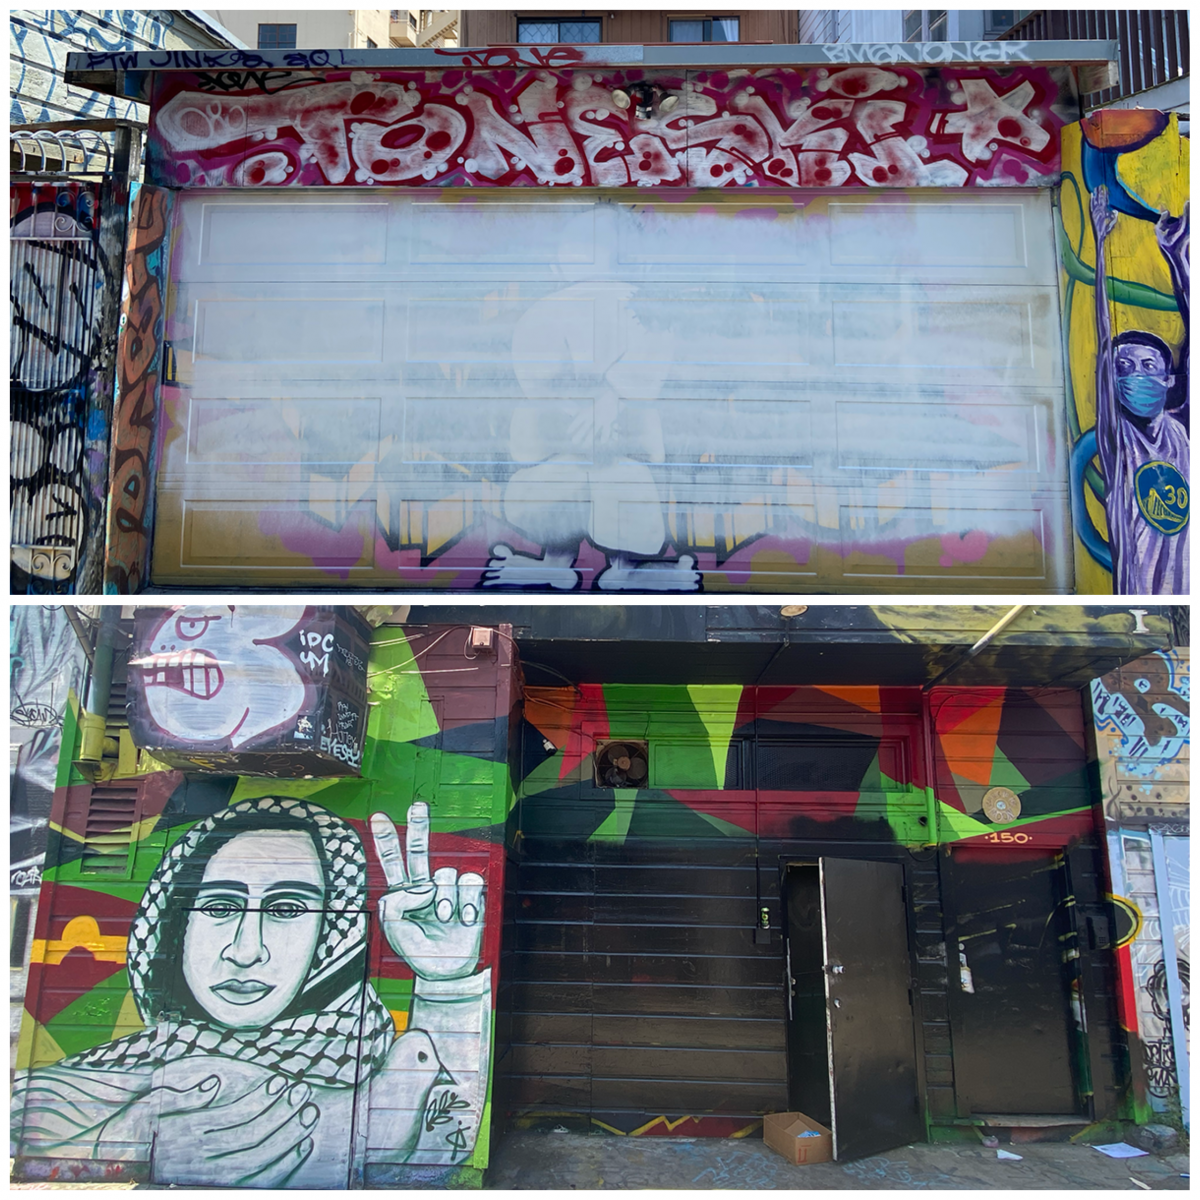 Lilac Alley murals